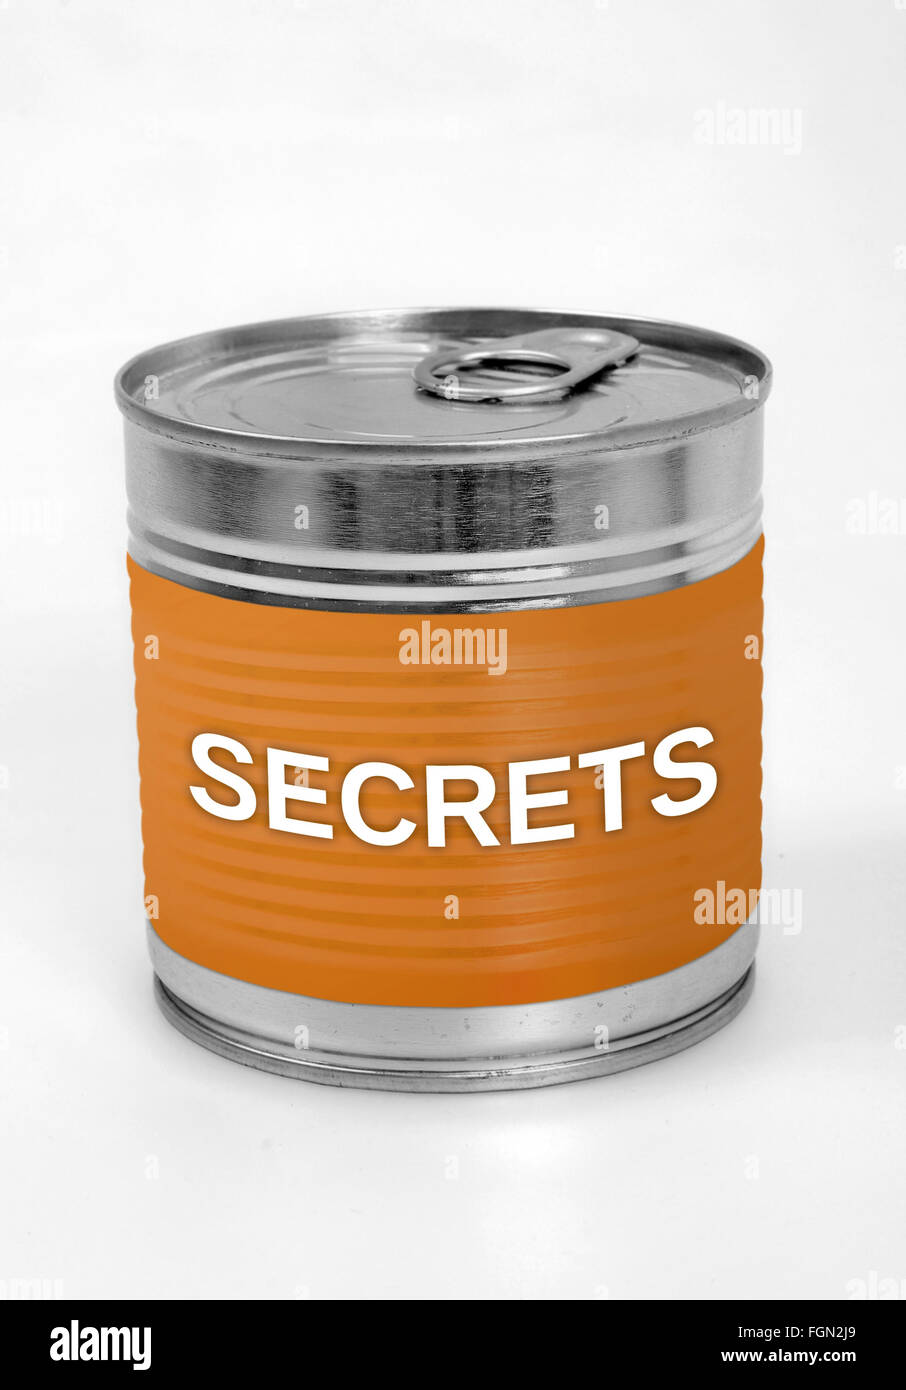 Secrets word on food can - Stock Image